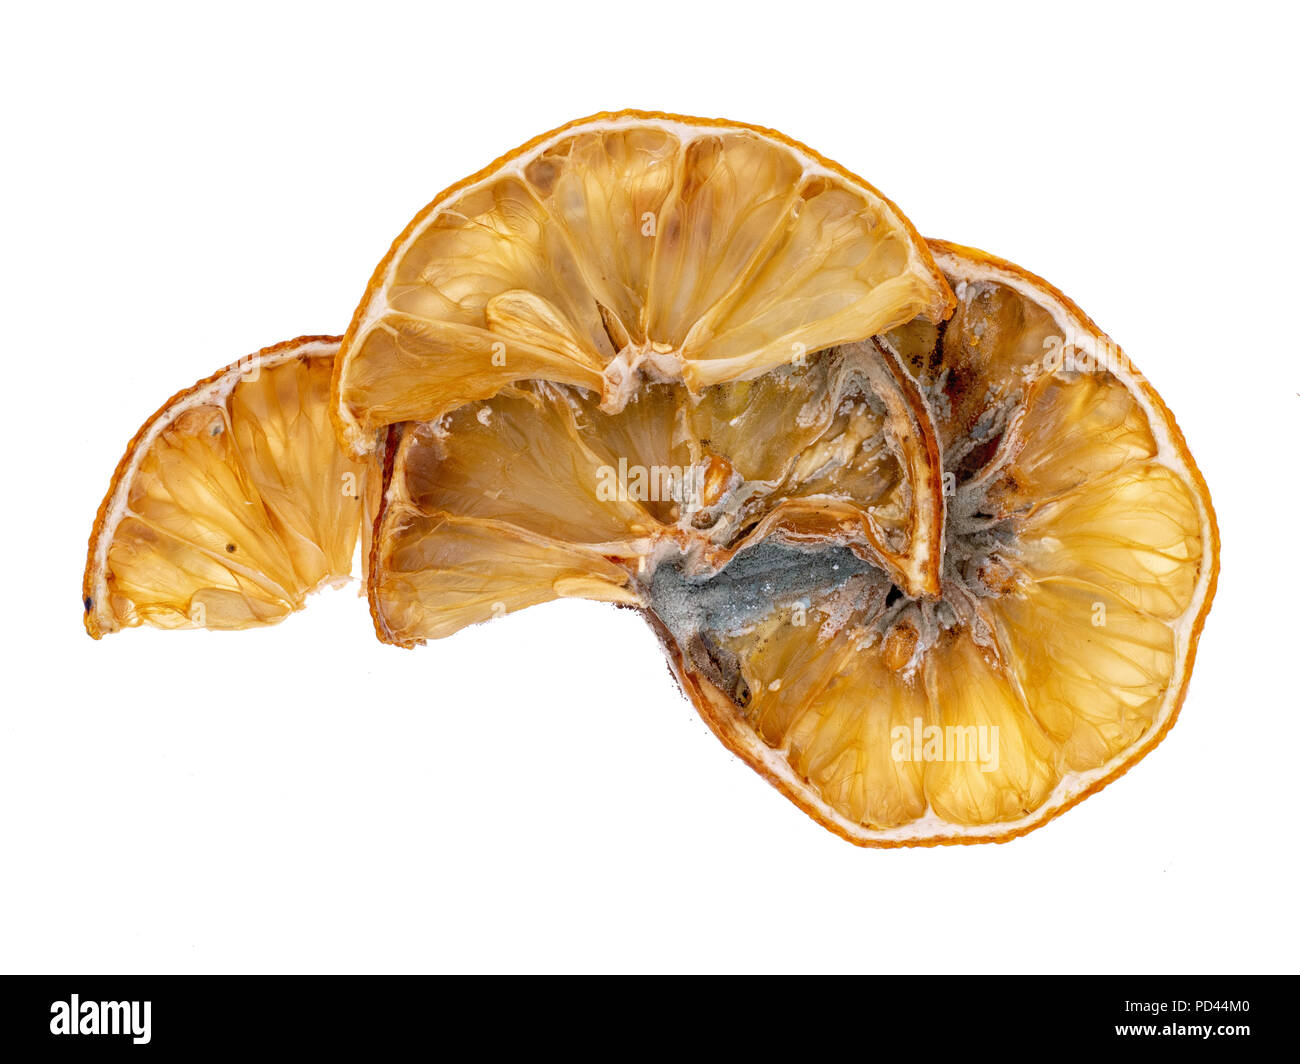 Lemon slices gone mouldy with mold. Beautiful natural decomposition. Isolated on a white background Stock Photo